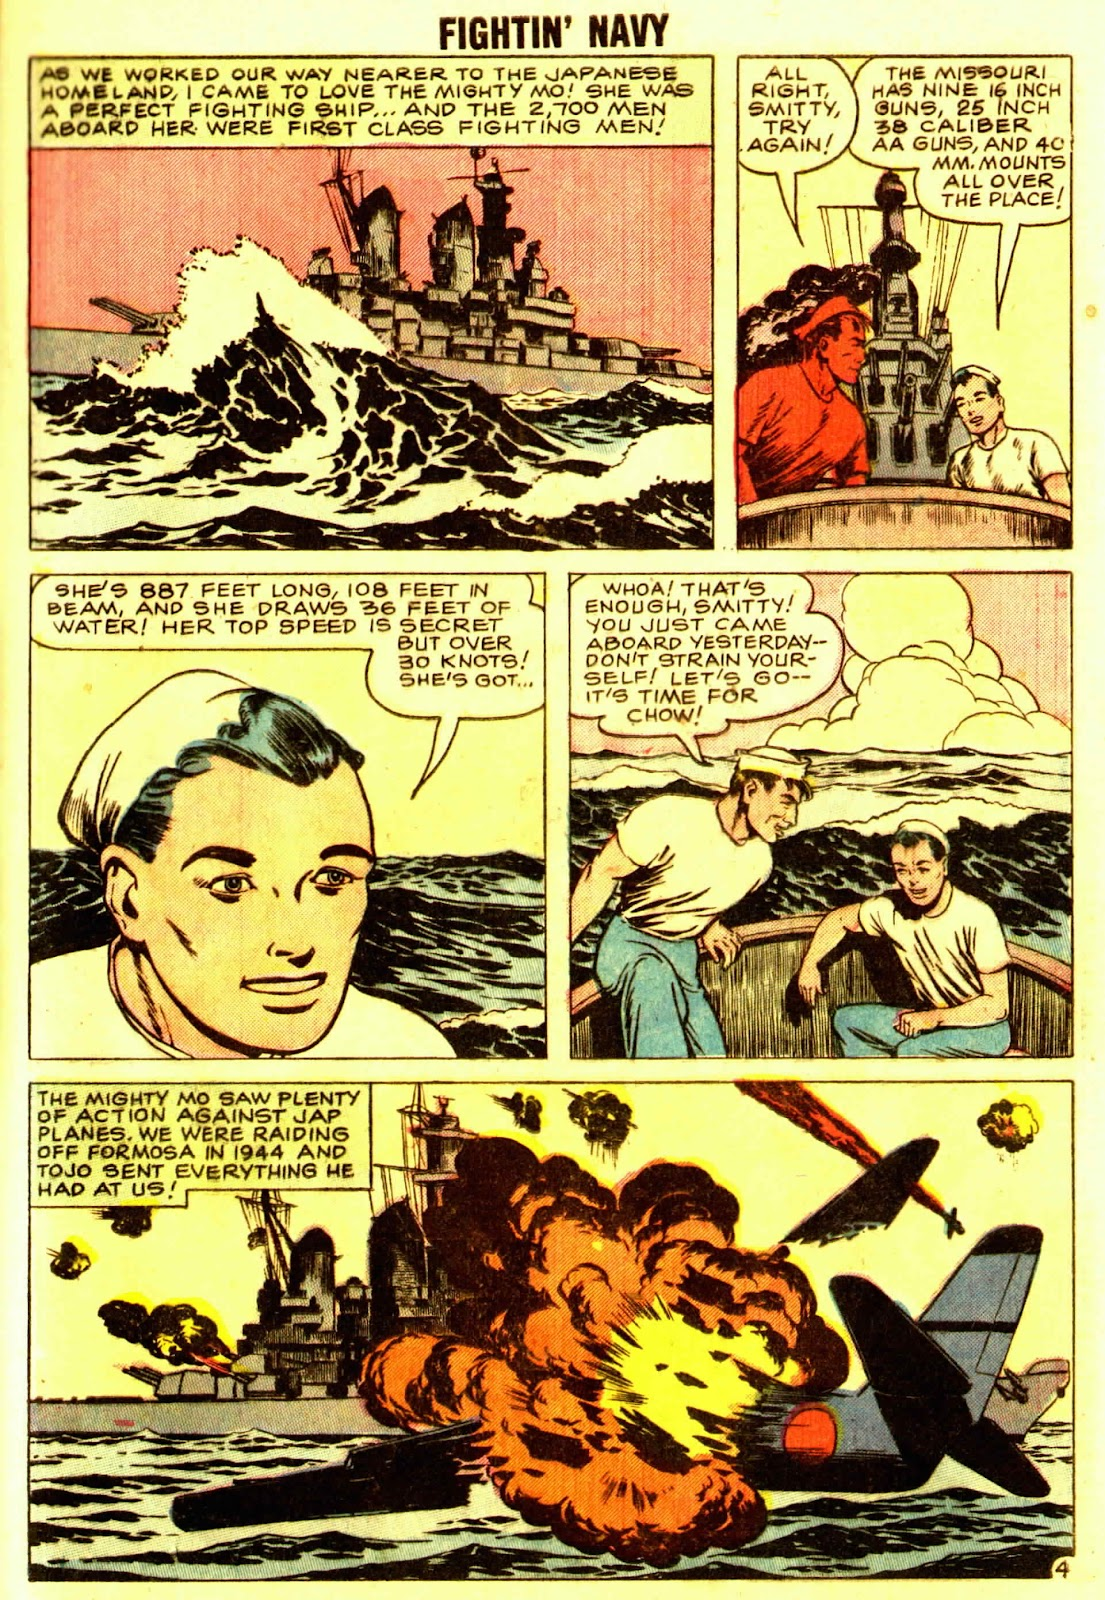 Read online Fightin' Navy comic -  Issue #83 - 63